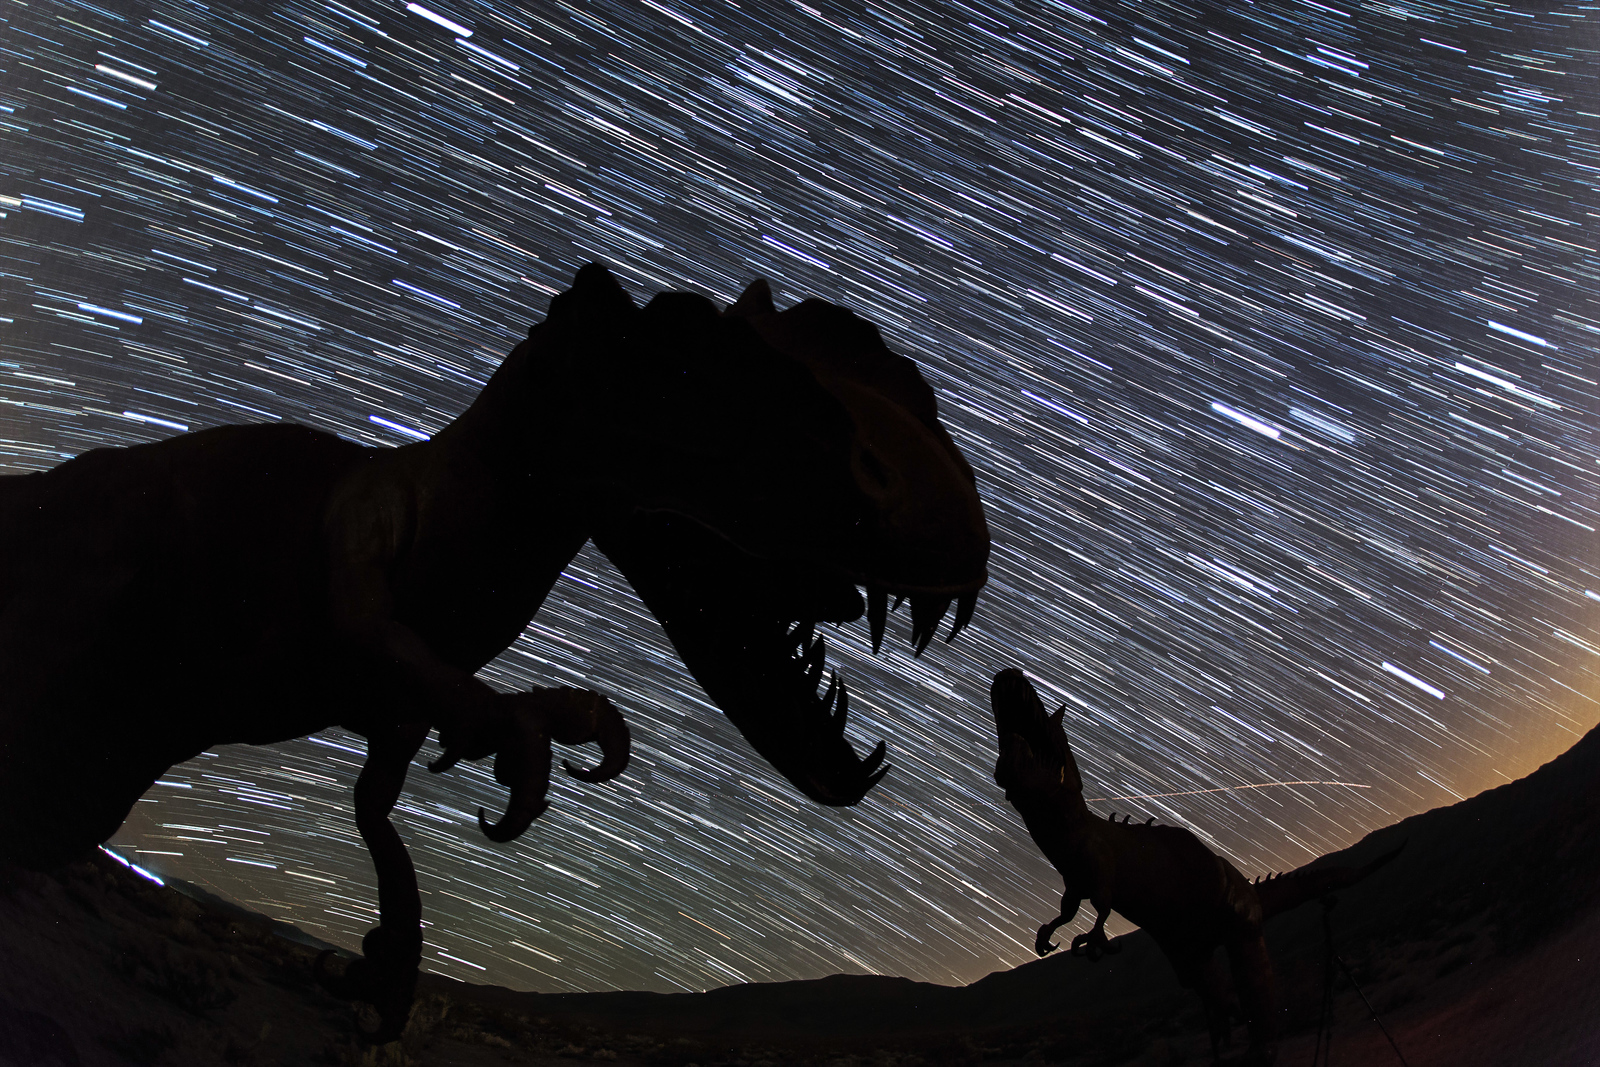 Dinosaur battle and star trails